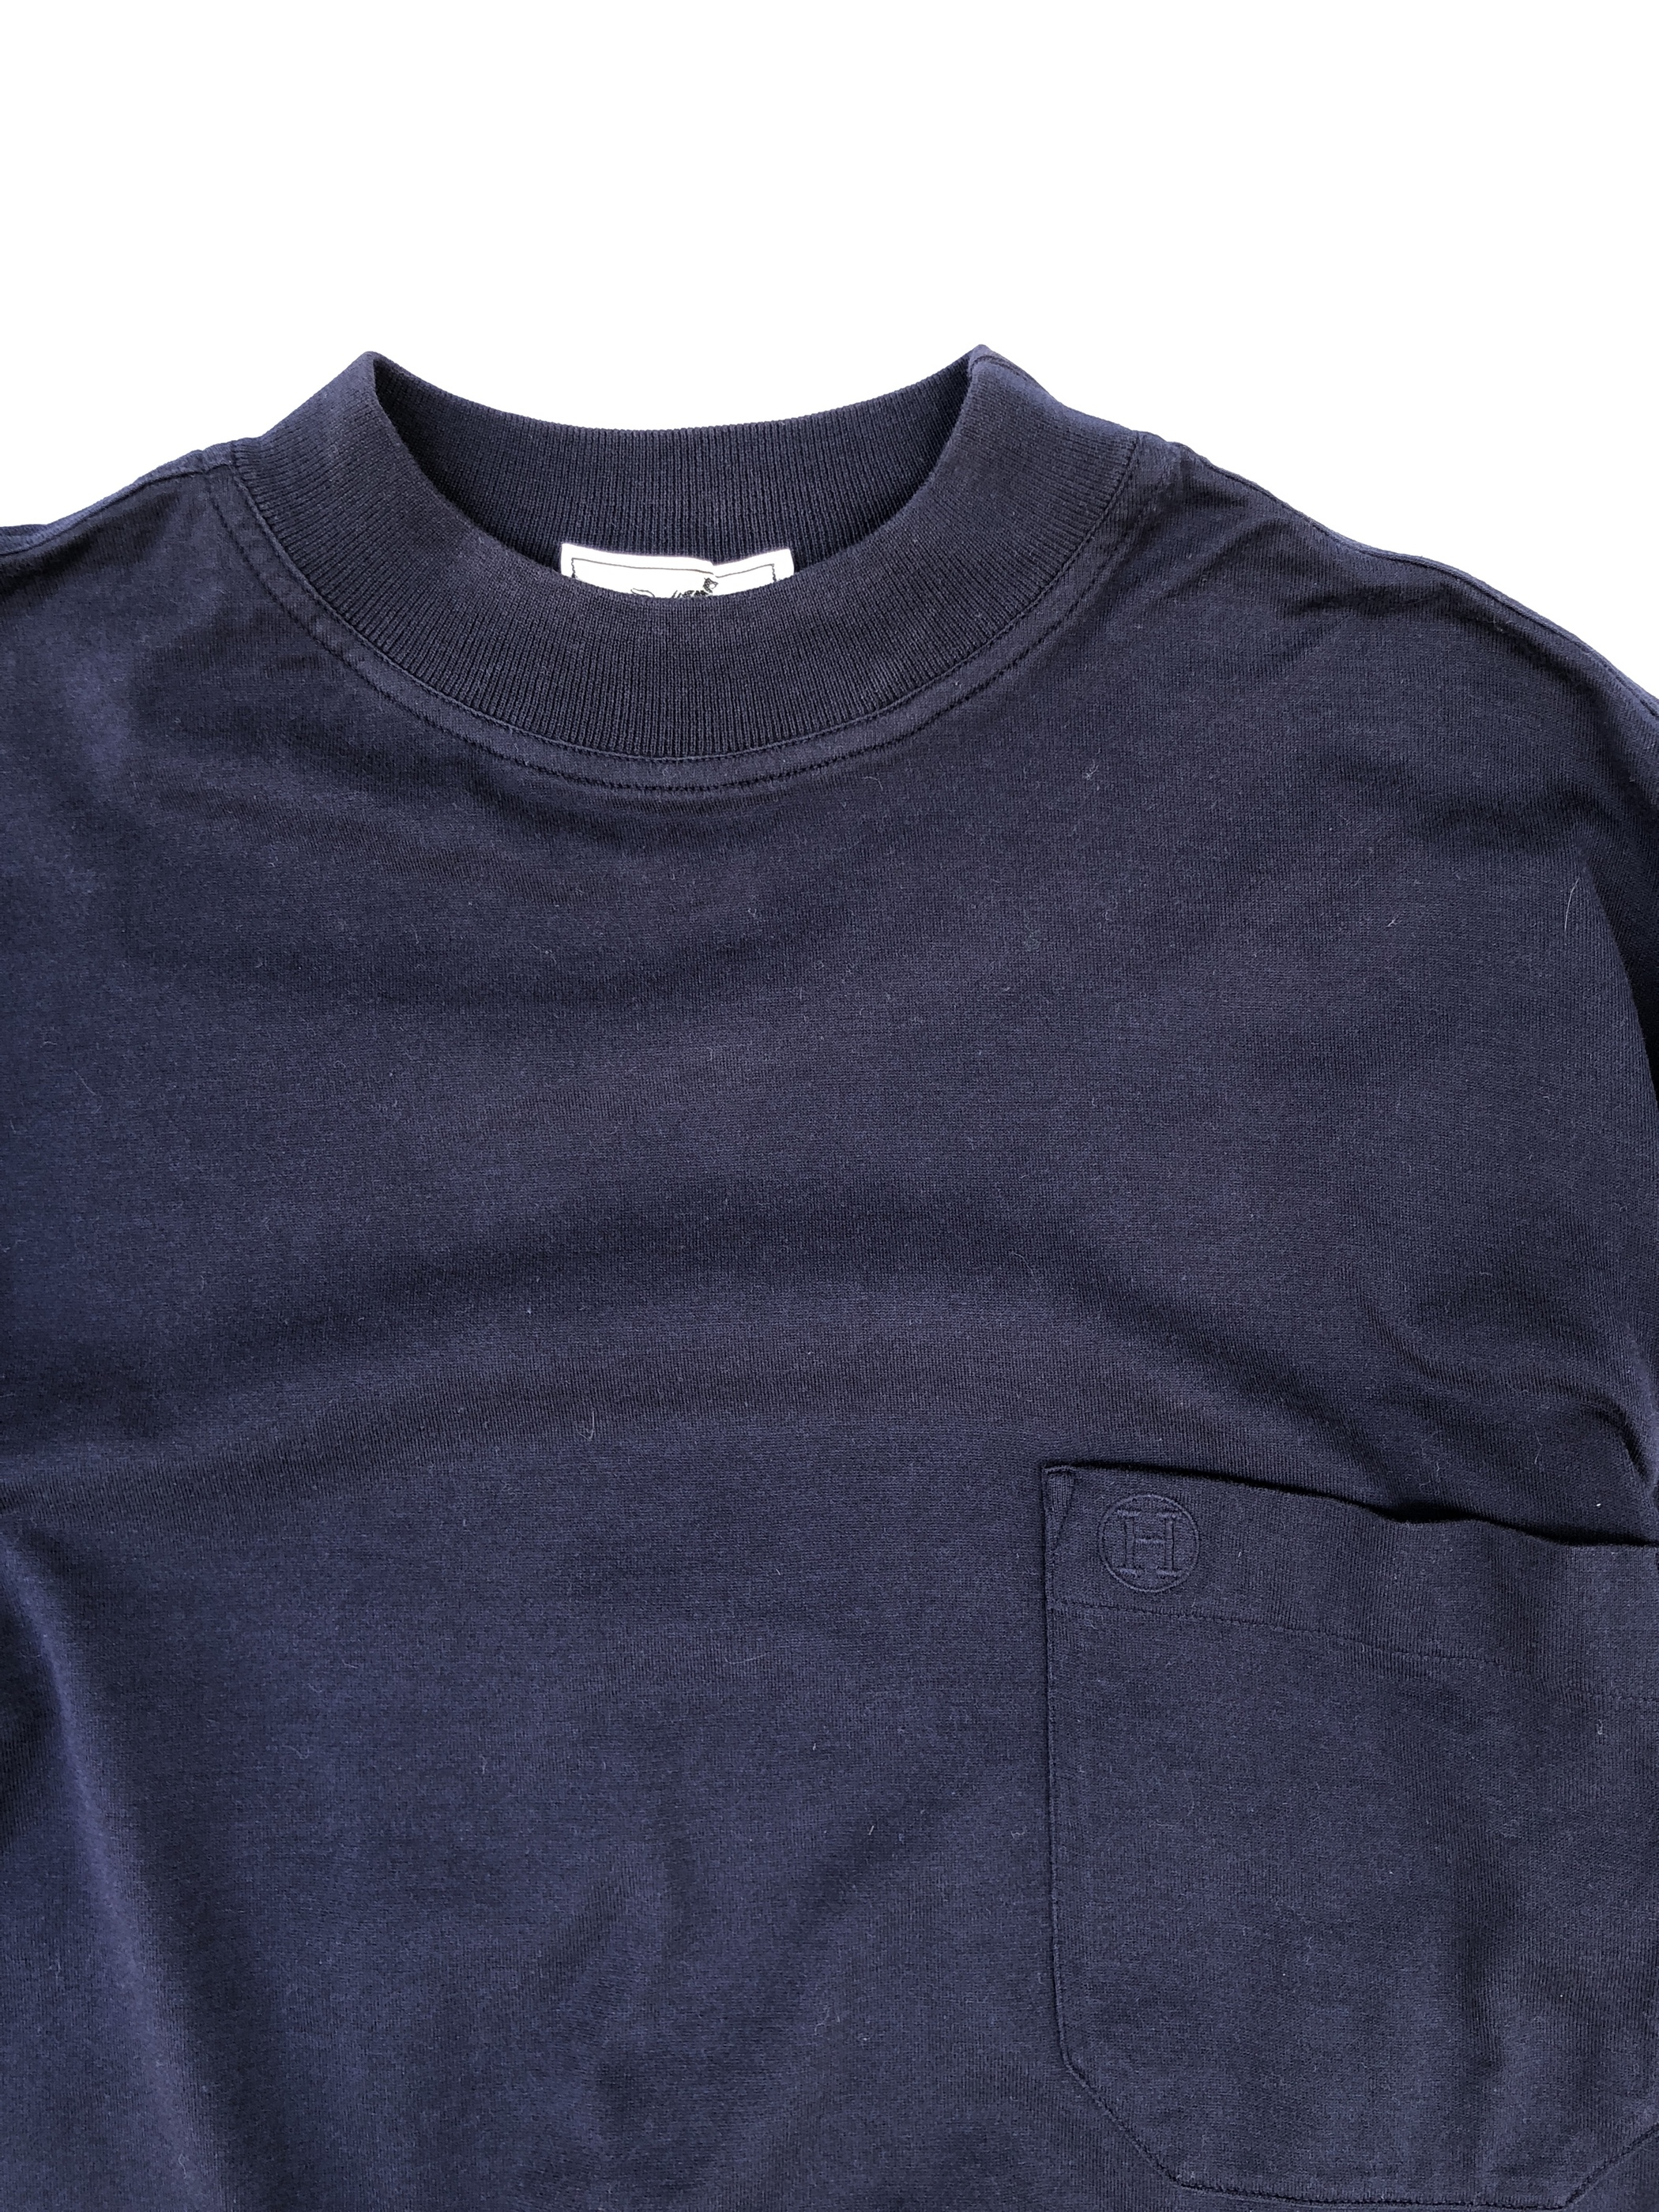 "HERMES / high neck pocket tee ""navy"" (USED)"